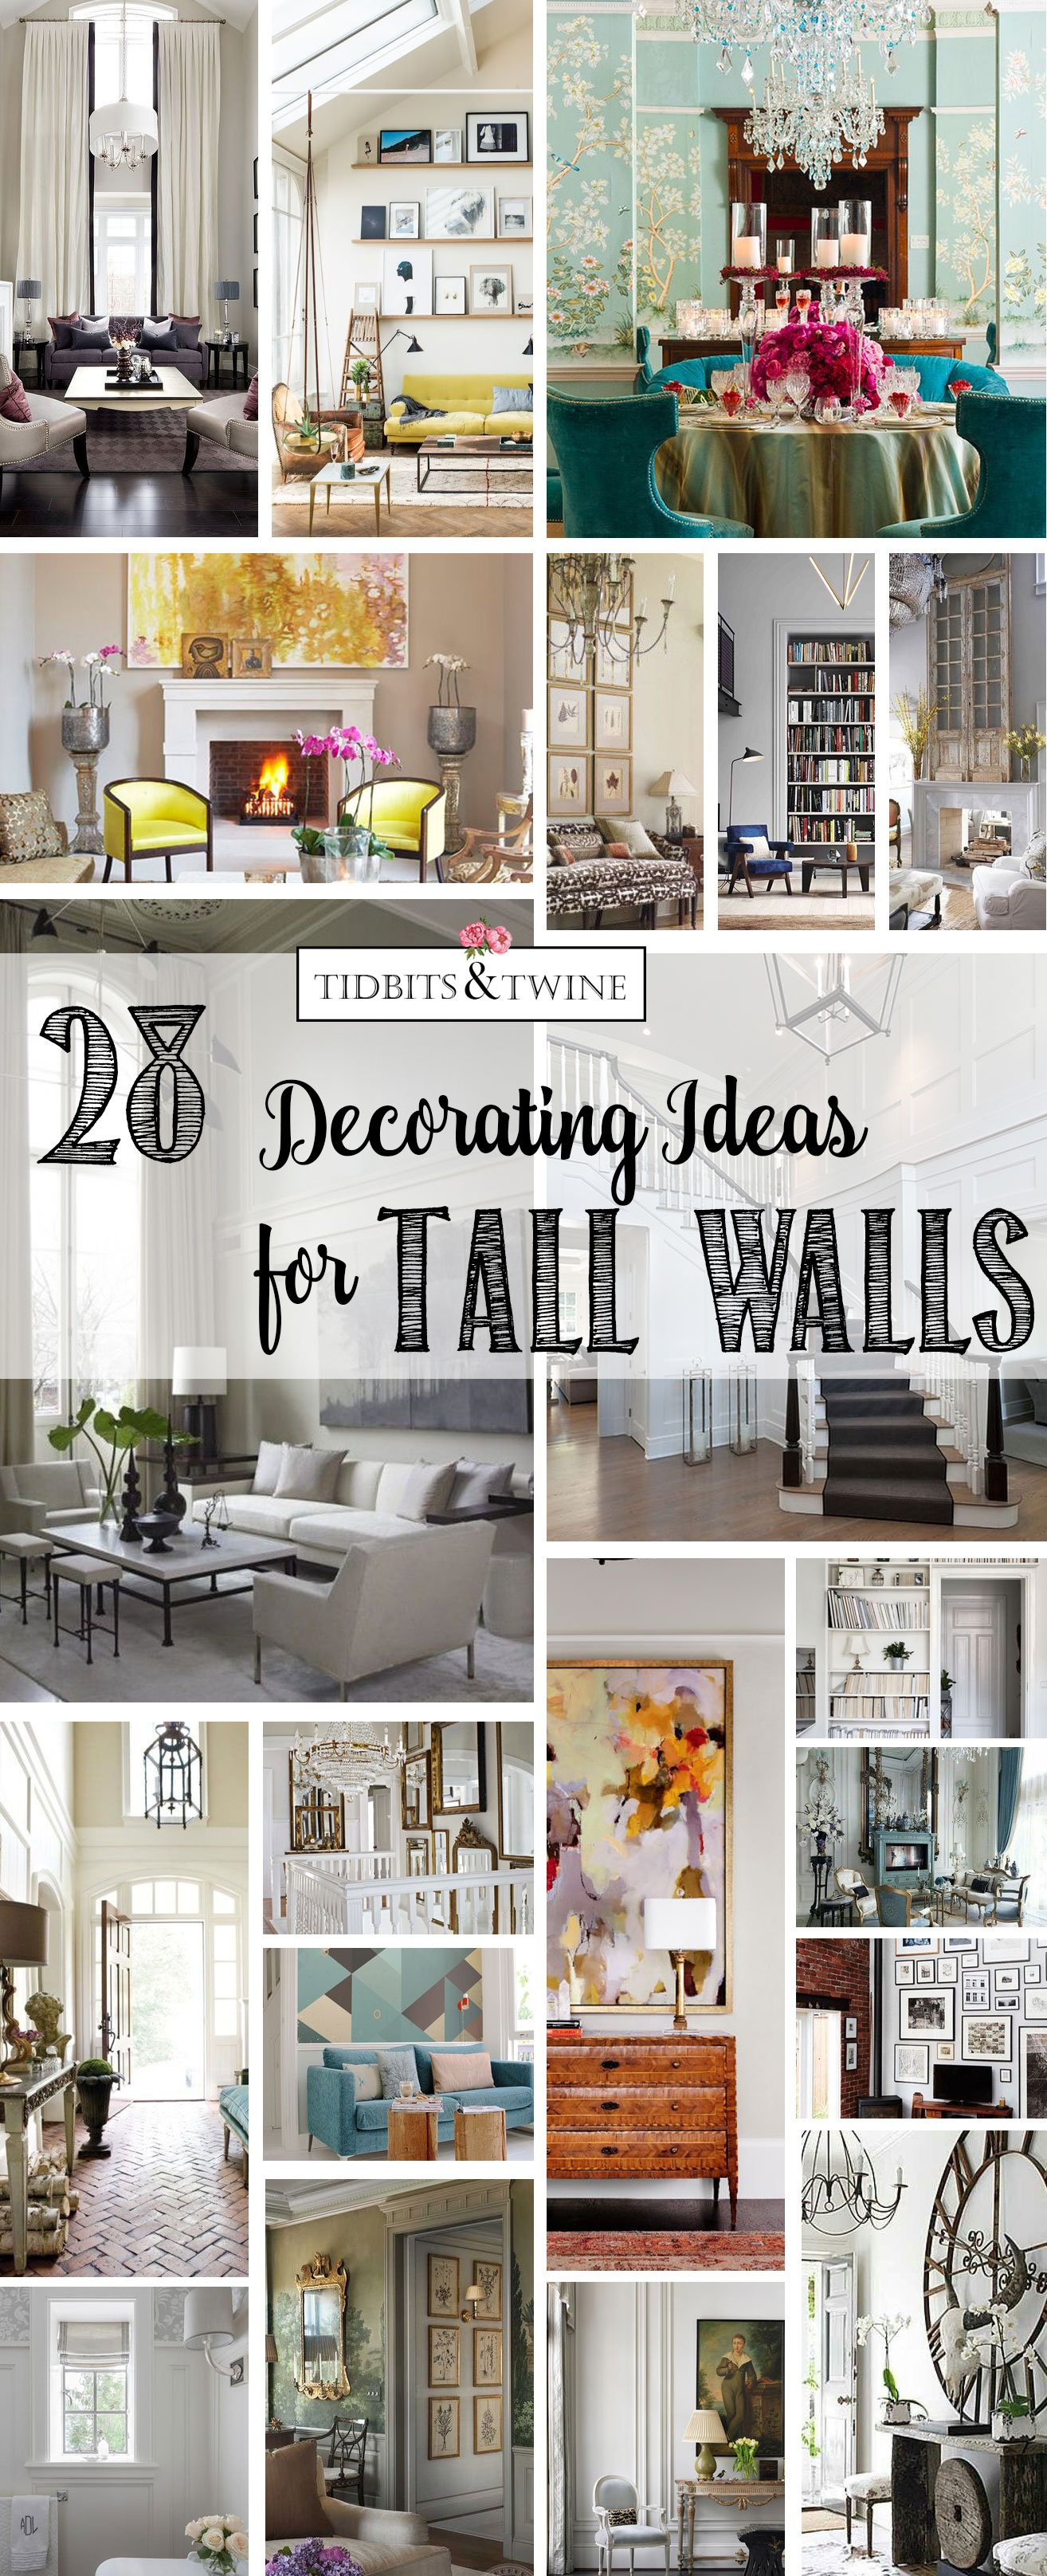 28 Creative Decorating Ideas For Tall Walls